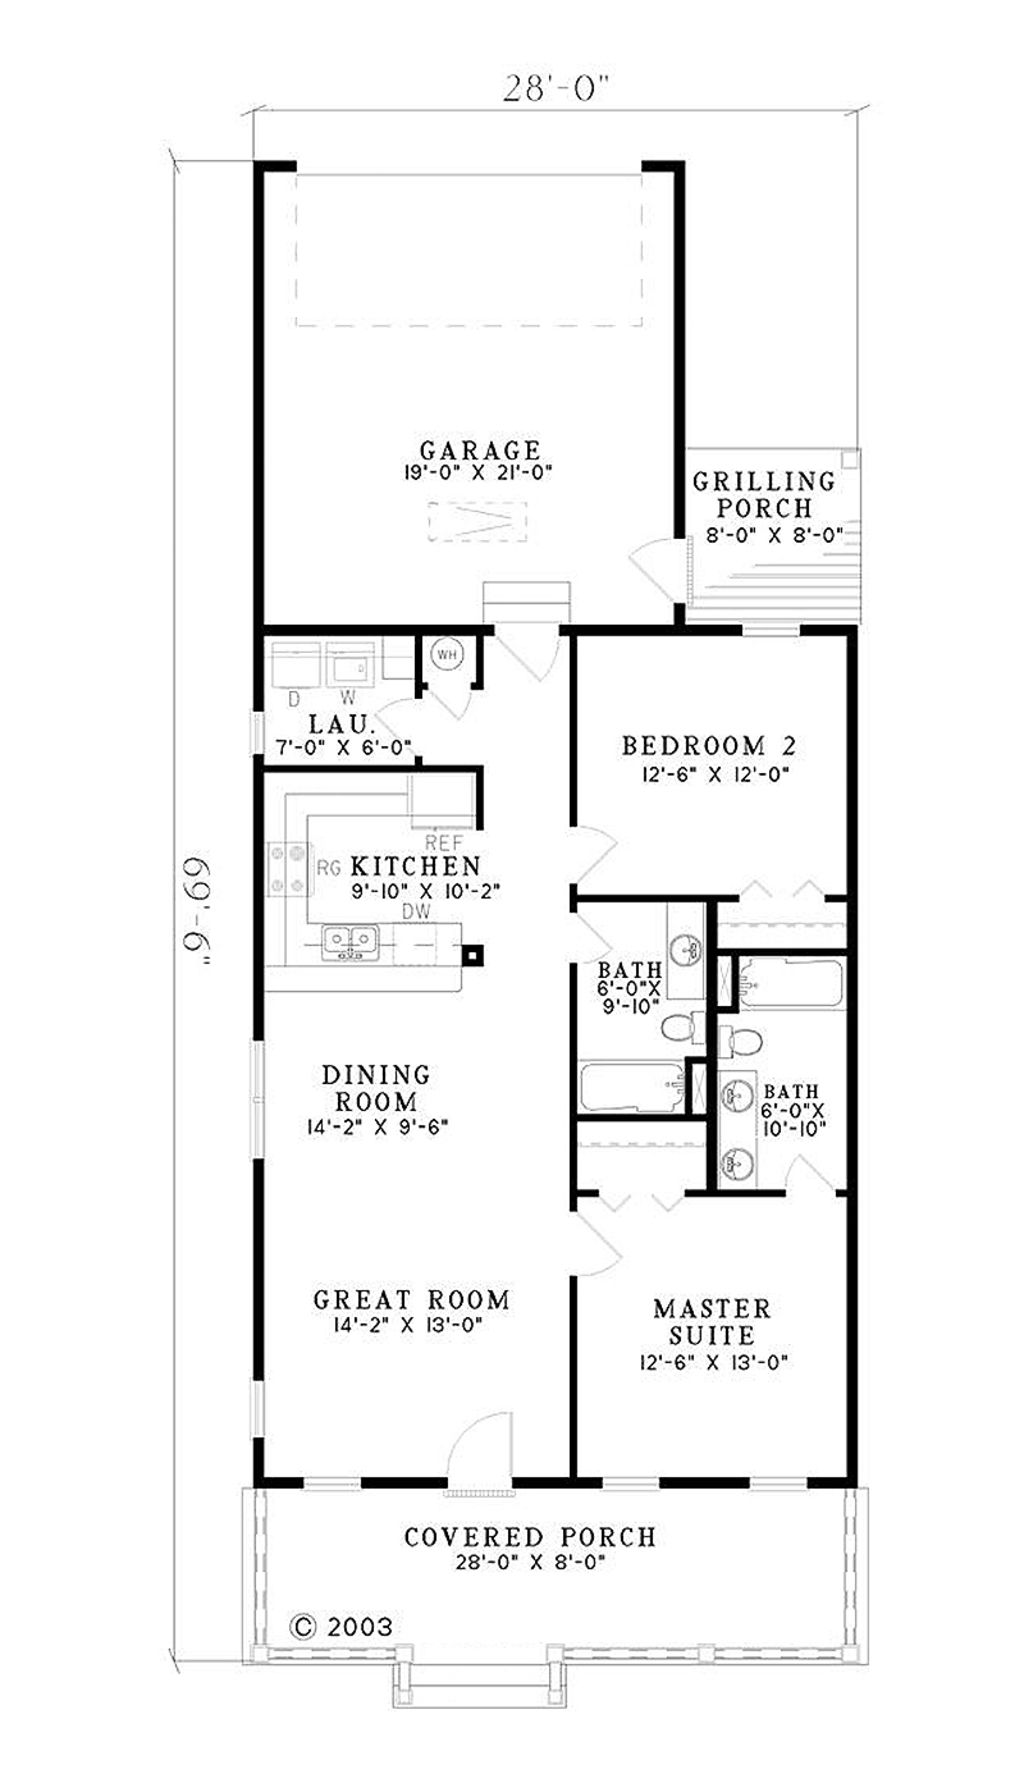 Southern style house plan 2 beds baths 1120 sq ft for Southern style floor plans